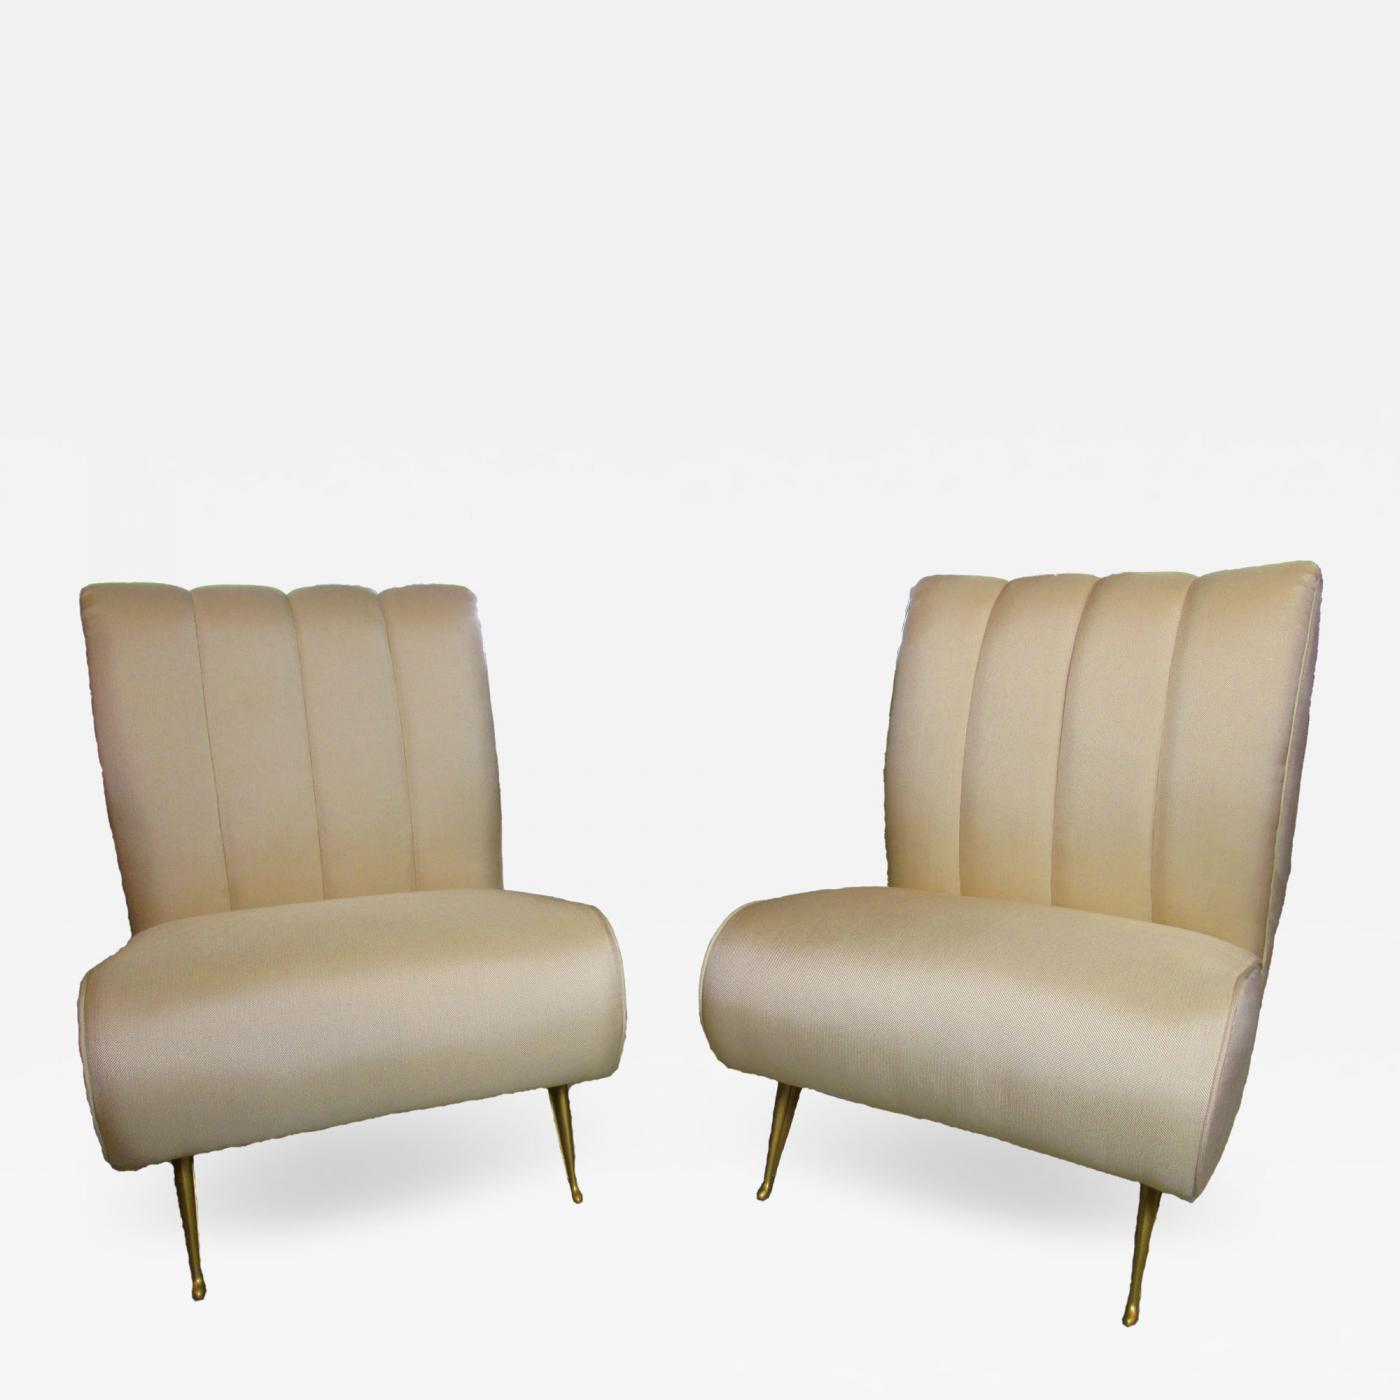 upholstered slipper chair plywood lounge gio ponti pair of chairs